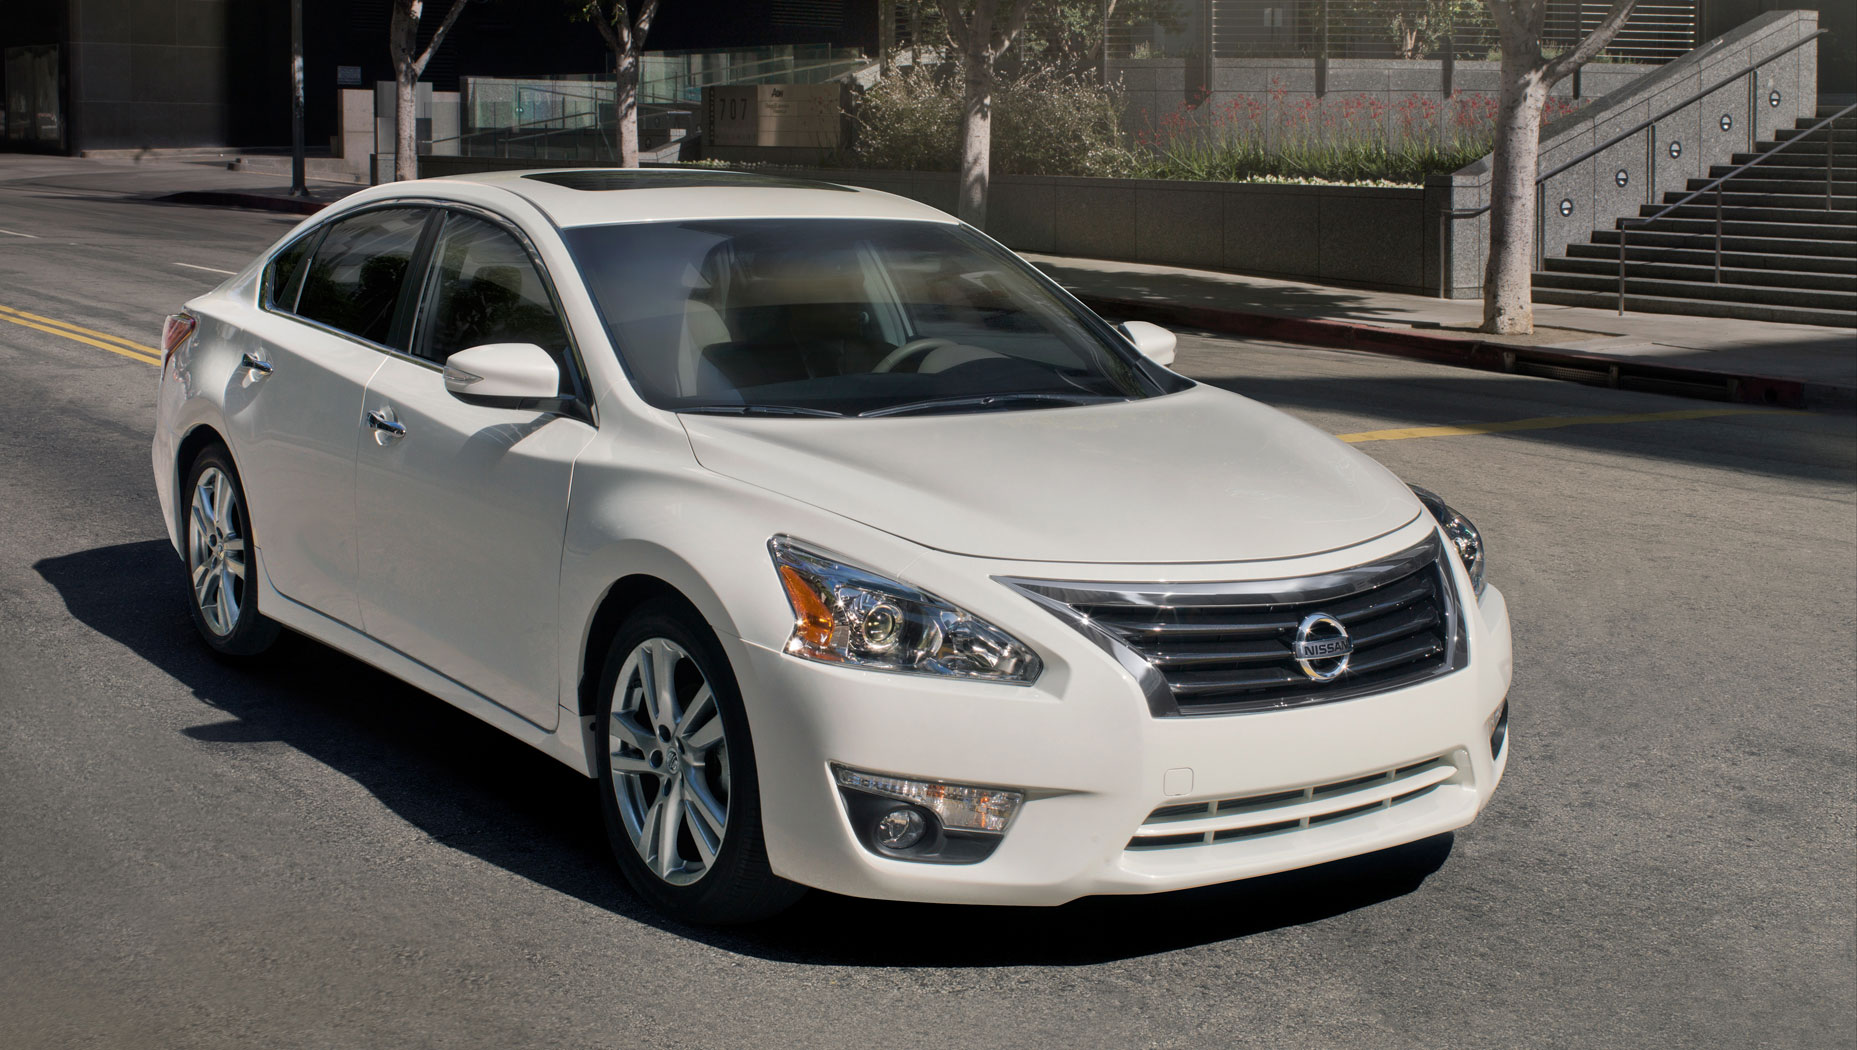 2013 Nissan Altima Wheels >> Tuning Nissan Altima 2013 online, accessories and spare parts for tuning Nissan Altima 2013